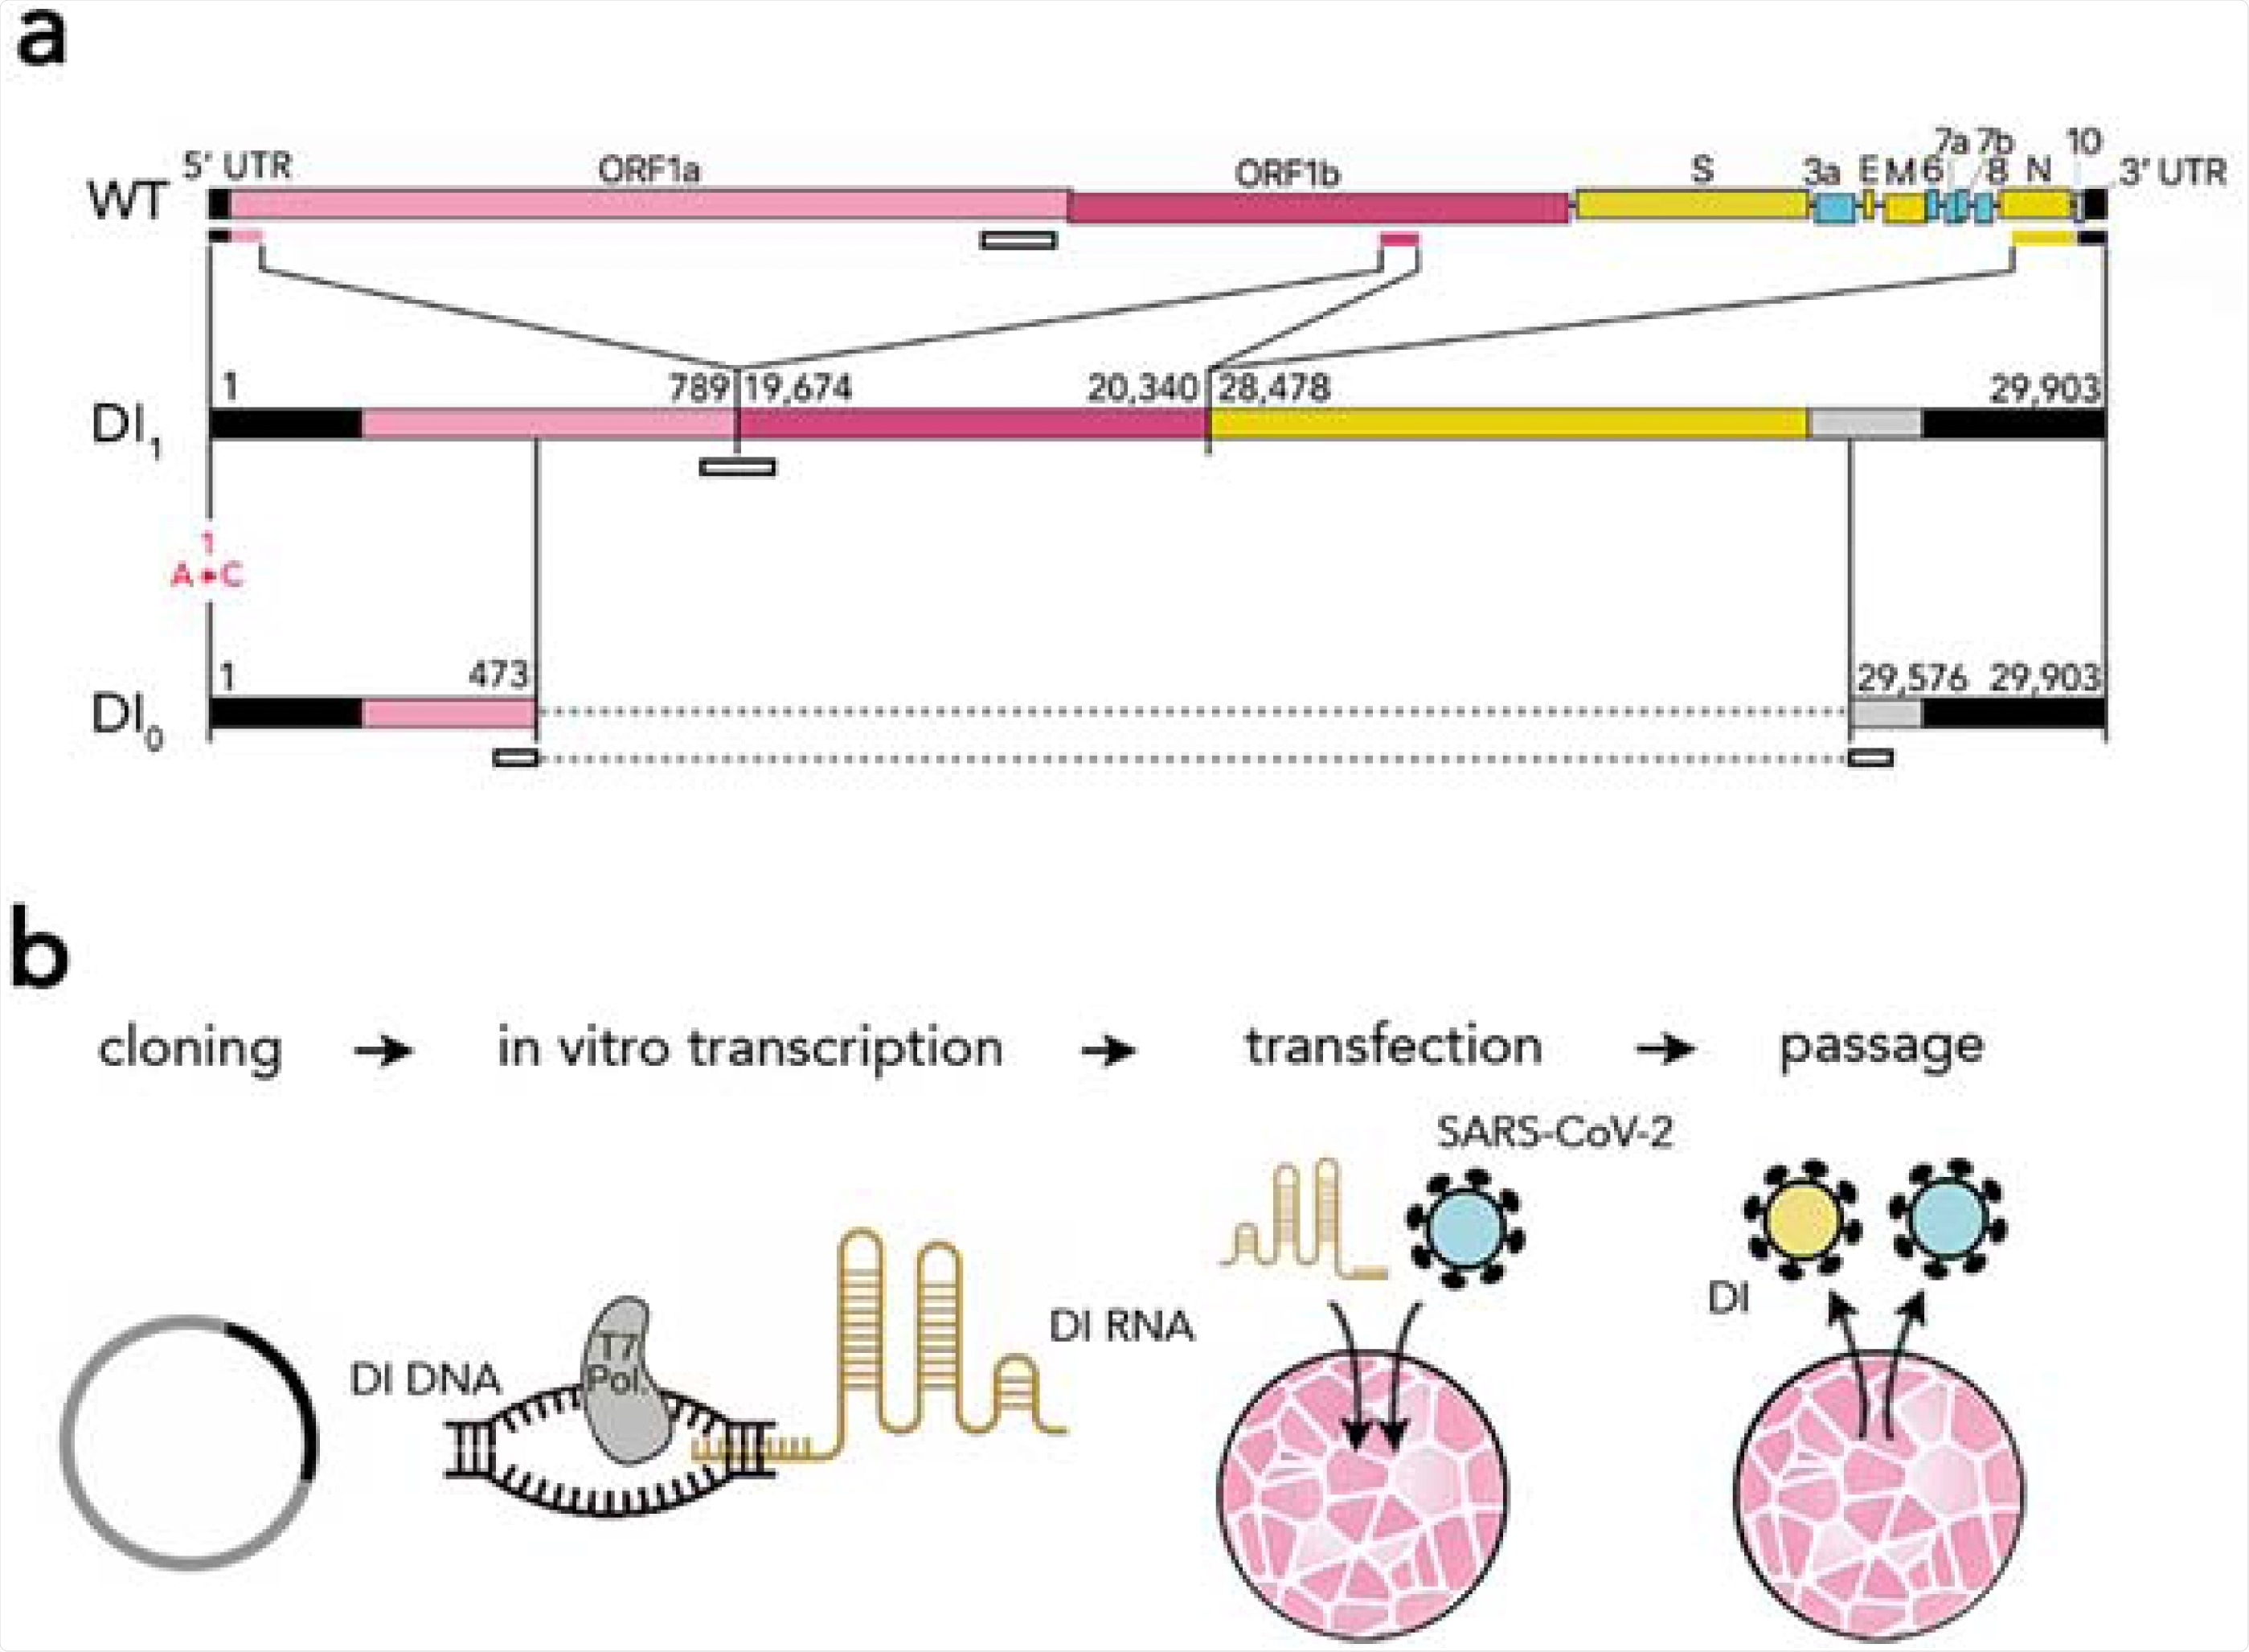 Synthetic defective interfering viruses. (A) Three portions of the wild type (WT) SARS-CoV-2 genome were used to create a synthetic defective interfering genome (DI1) and a shorter version (DI0) comprising only parts of the two terminal portions. Numbers delimiting the portions refer to positions in the SARS-CoV-2 genome. The first position is mutated (A →C) in both DI1 and DI0. Open rectangles show the position of the probes and primers used. (B) To produce synthetic DI particles, DNA constructs corresponding to the RNA sequence of DI1 or DI0 were transcribed into RNA in vitro using T7 RNA polymerase and transfected into Vero-E6 cells that were then infected with SARS-CoV-2. The supernatant from these cell cultures was used to infect new cells.